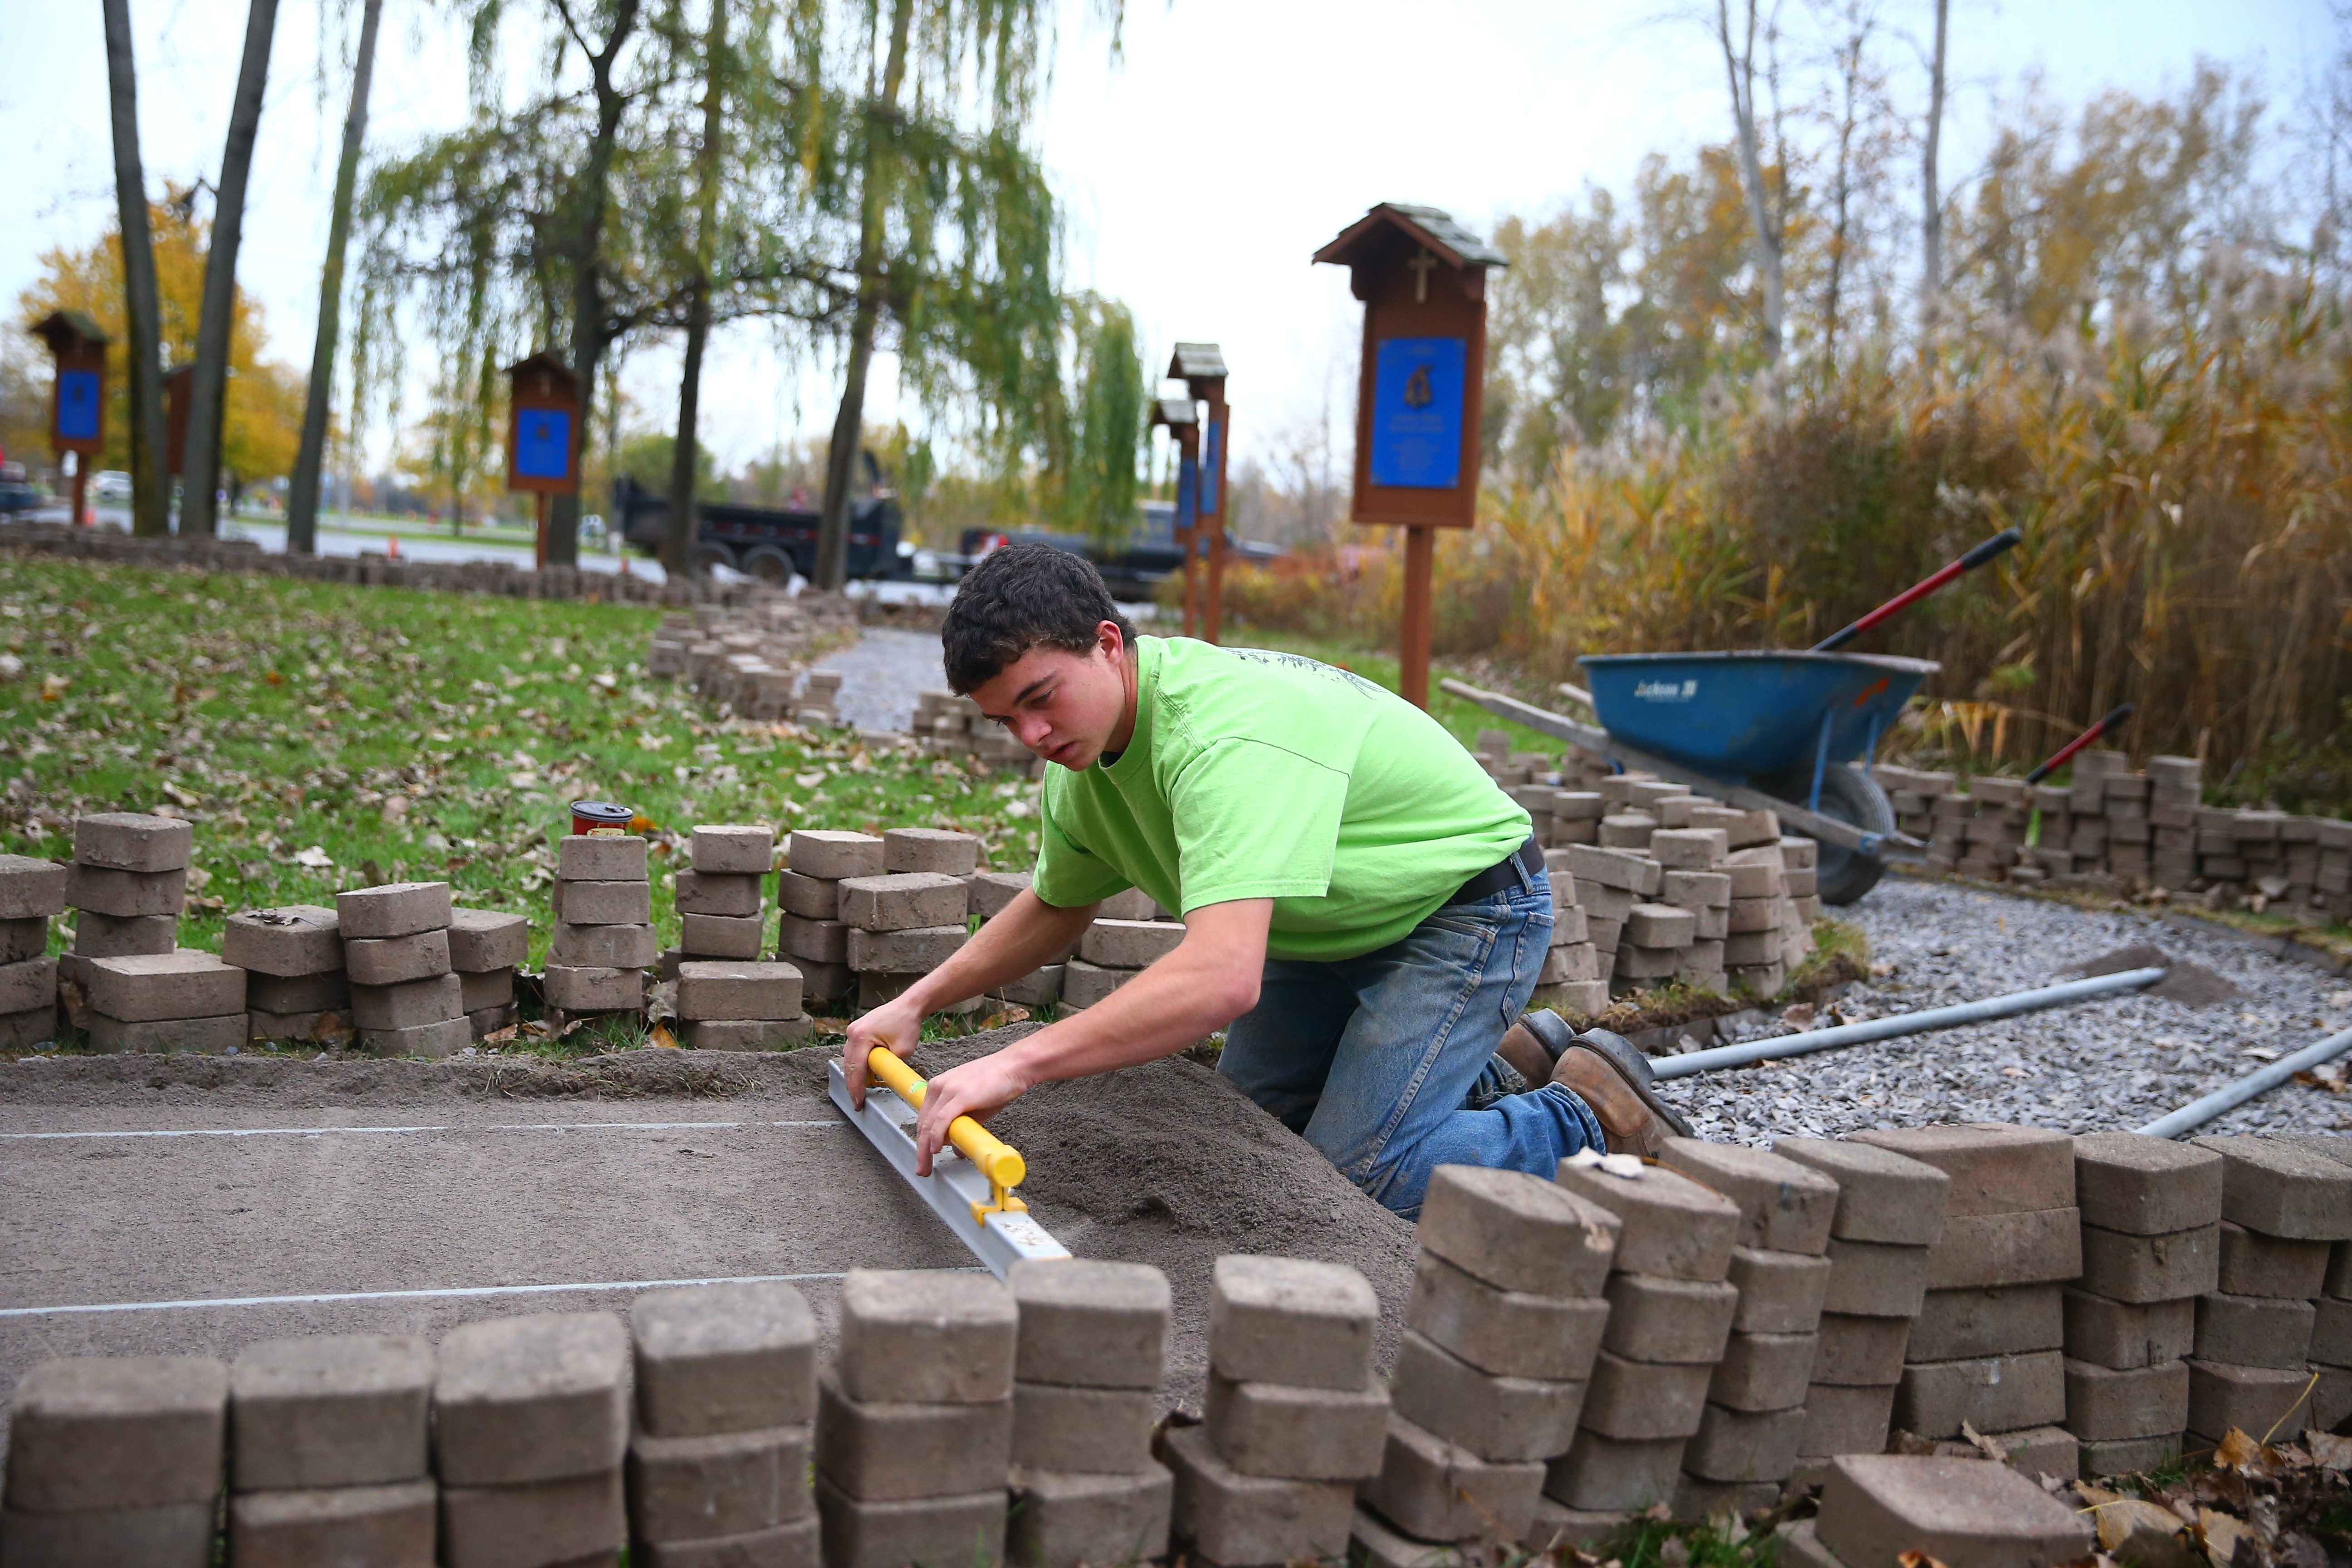 Colton Meyer from Troop 47 in Pendleton assembled a team of 40 to 50 volunteers to help him restore 350 feet of a brick pathway  behind St. Pius X Catholic Church in Getzville for his Eagle Scout project.